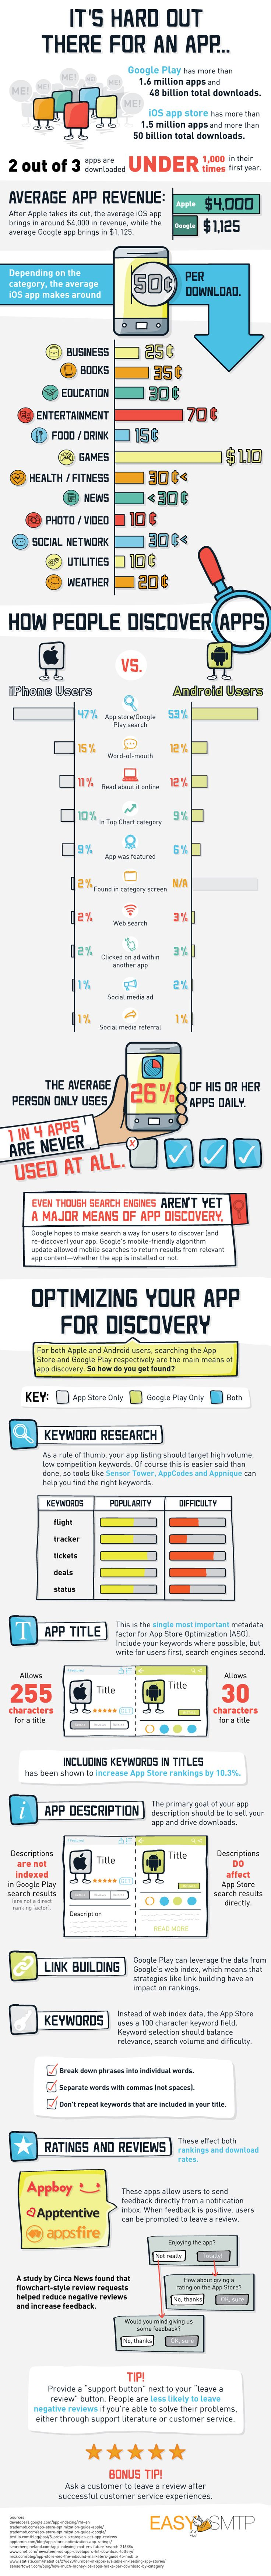 It's Hard Out There for an App #Infographic #Apps